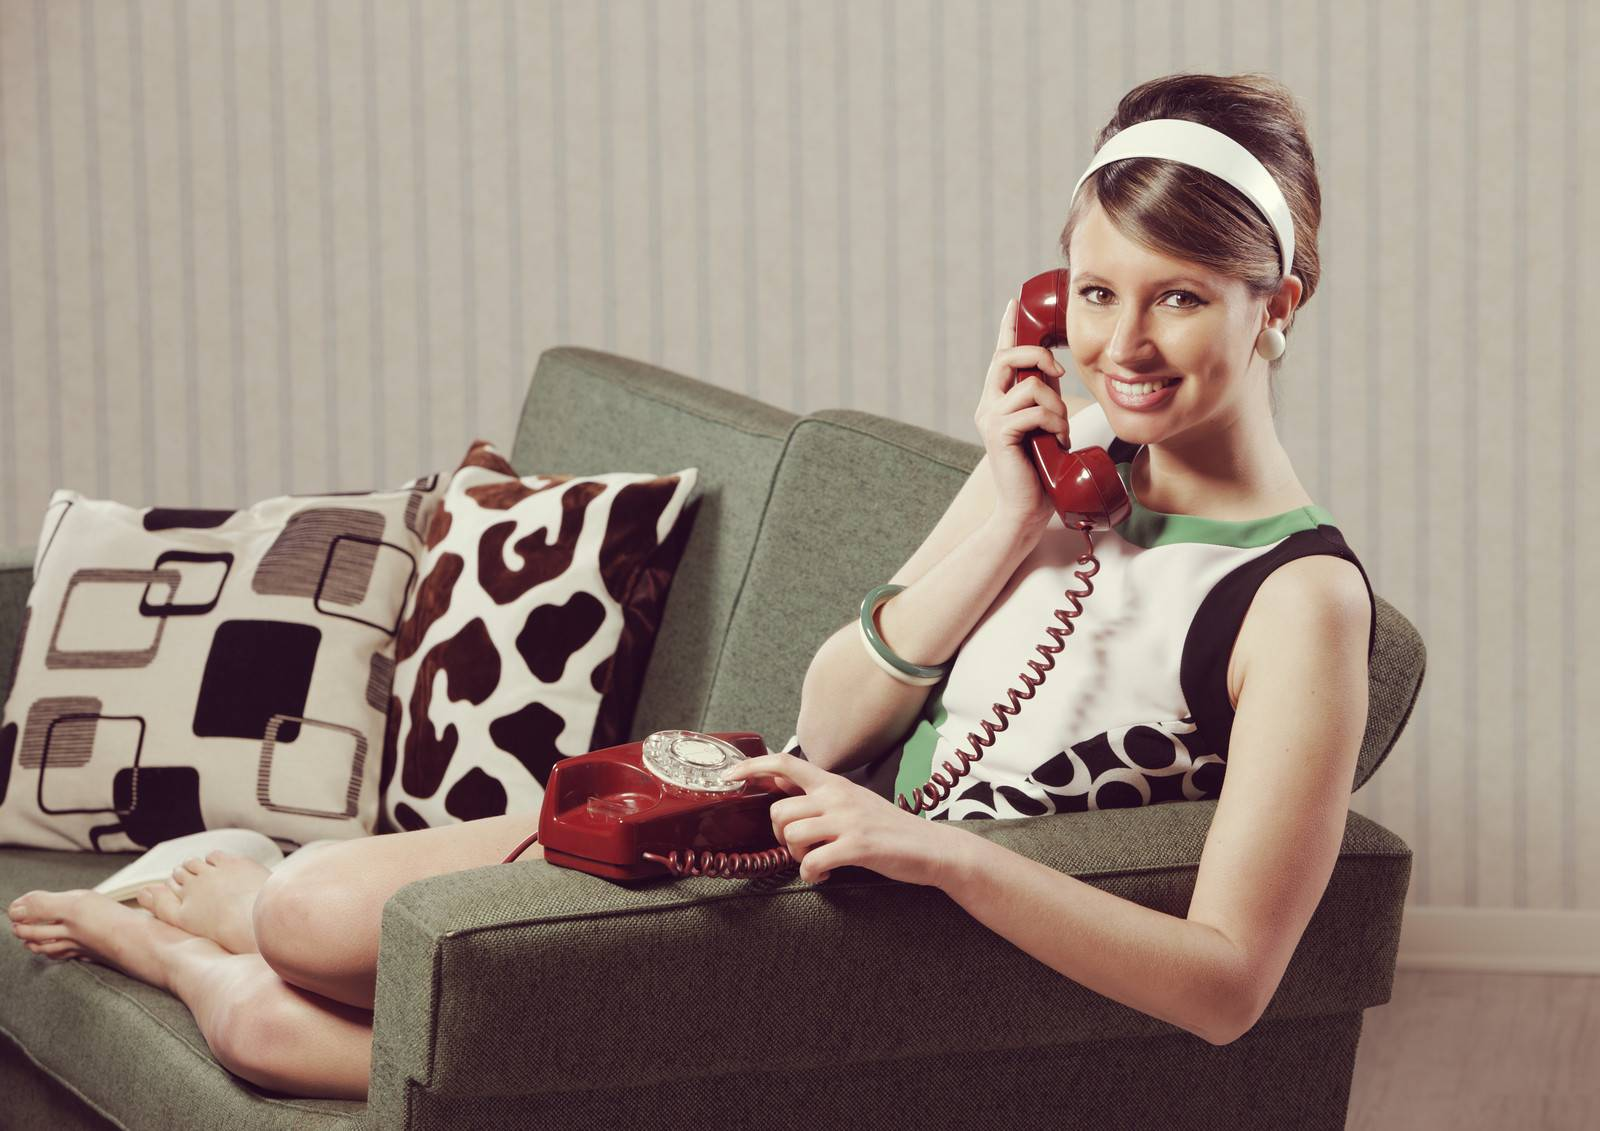 1960 style, Adult, Beautiful, Caucasian, Cheerful, Couch - D8567690